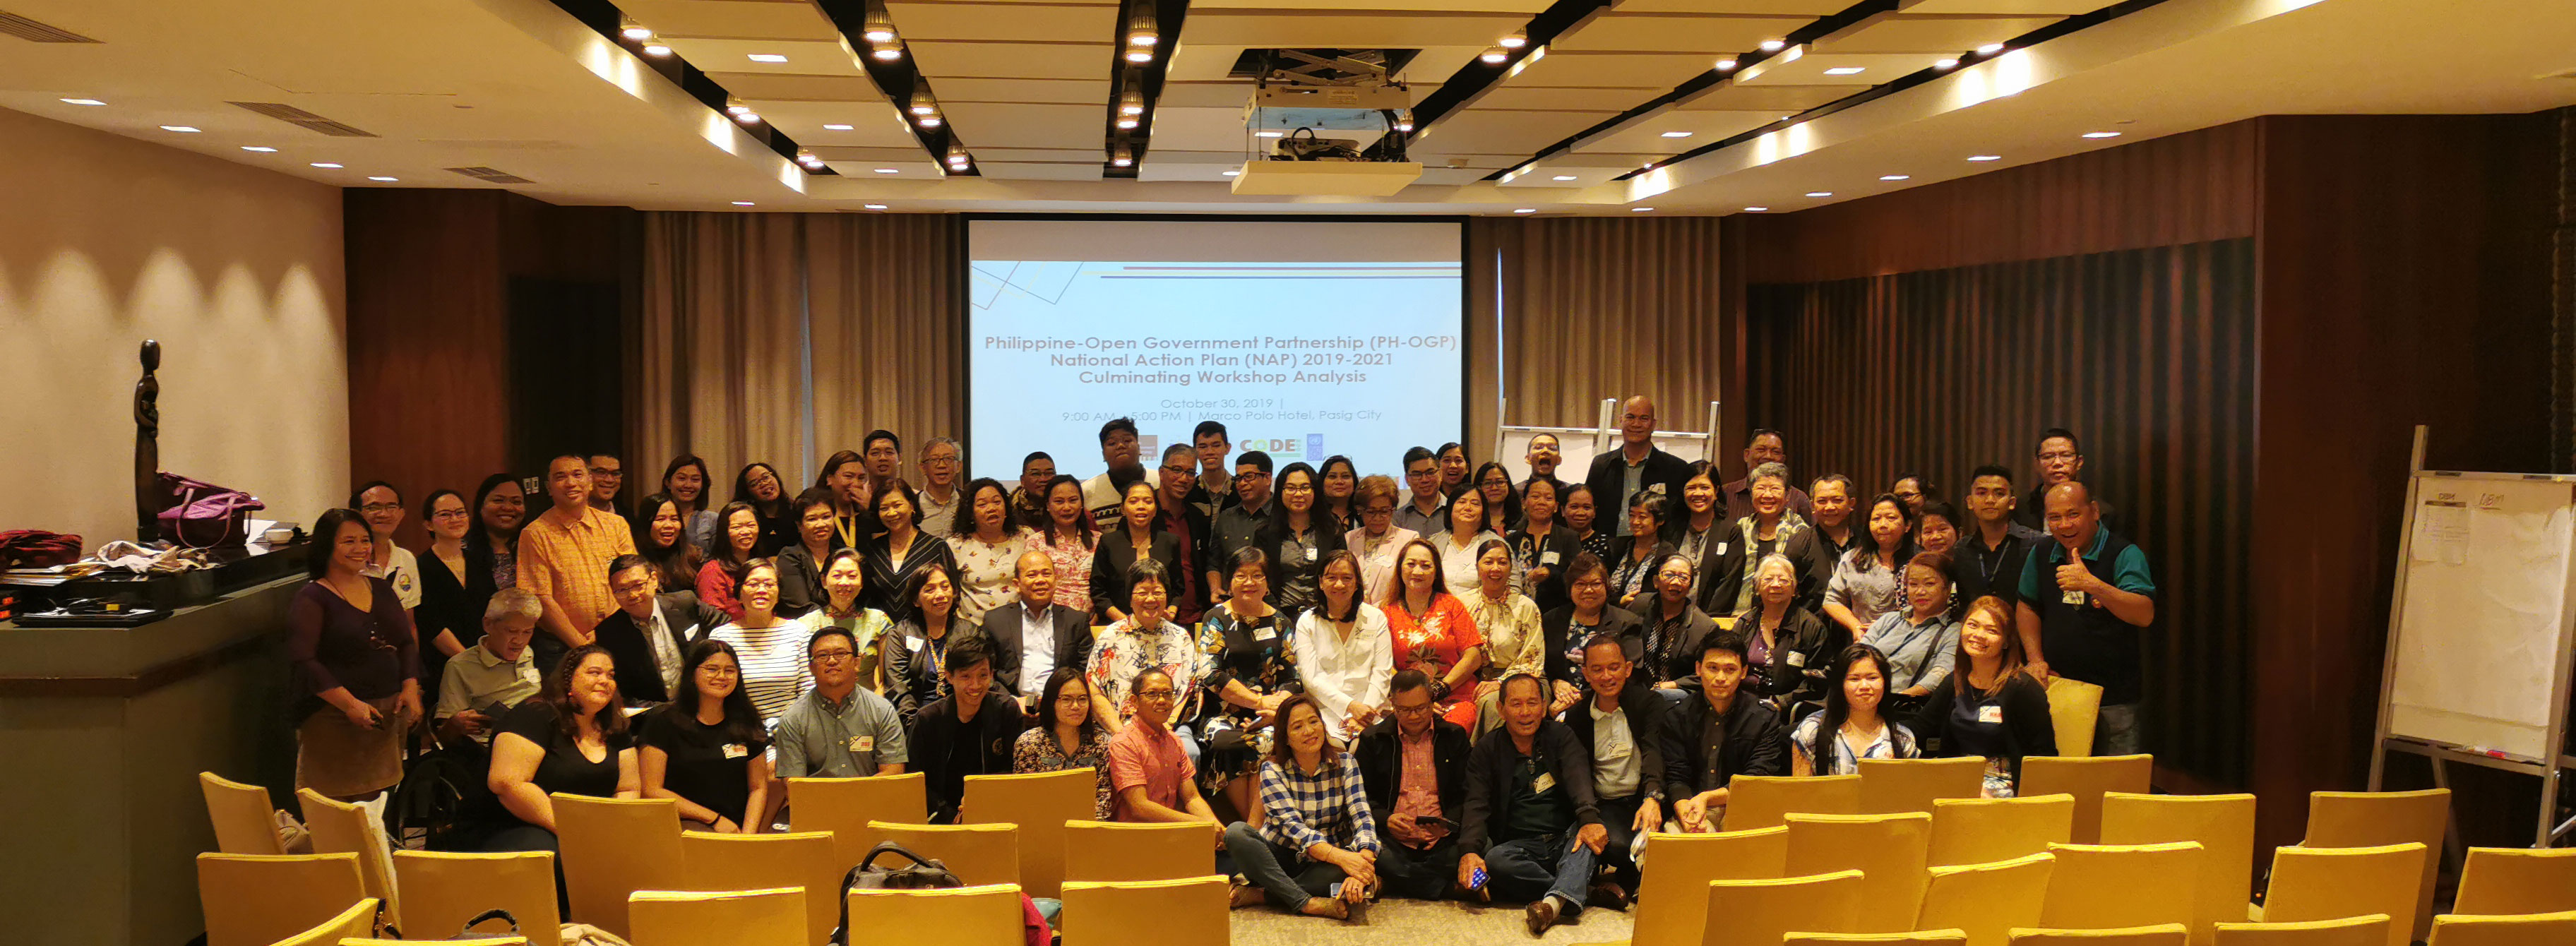 Participants of the OGP Culminating Workshop together with the PH-OGP Steering Committee